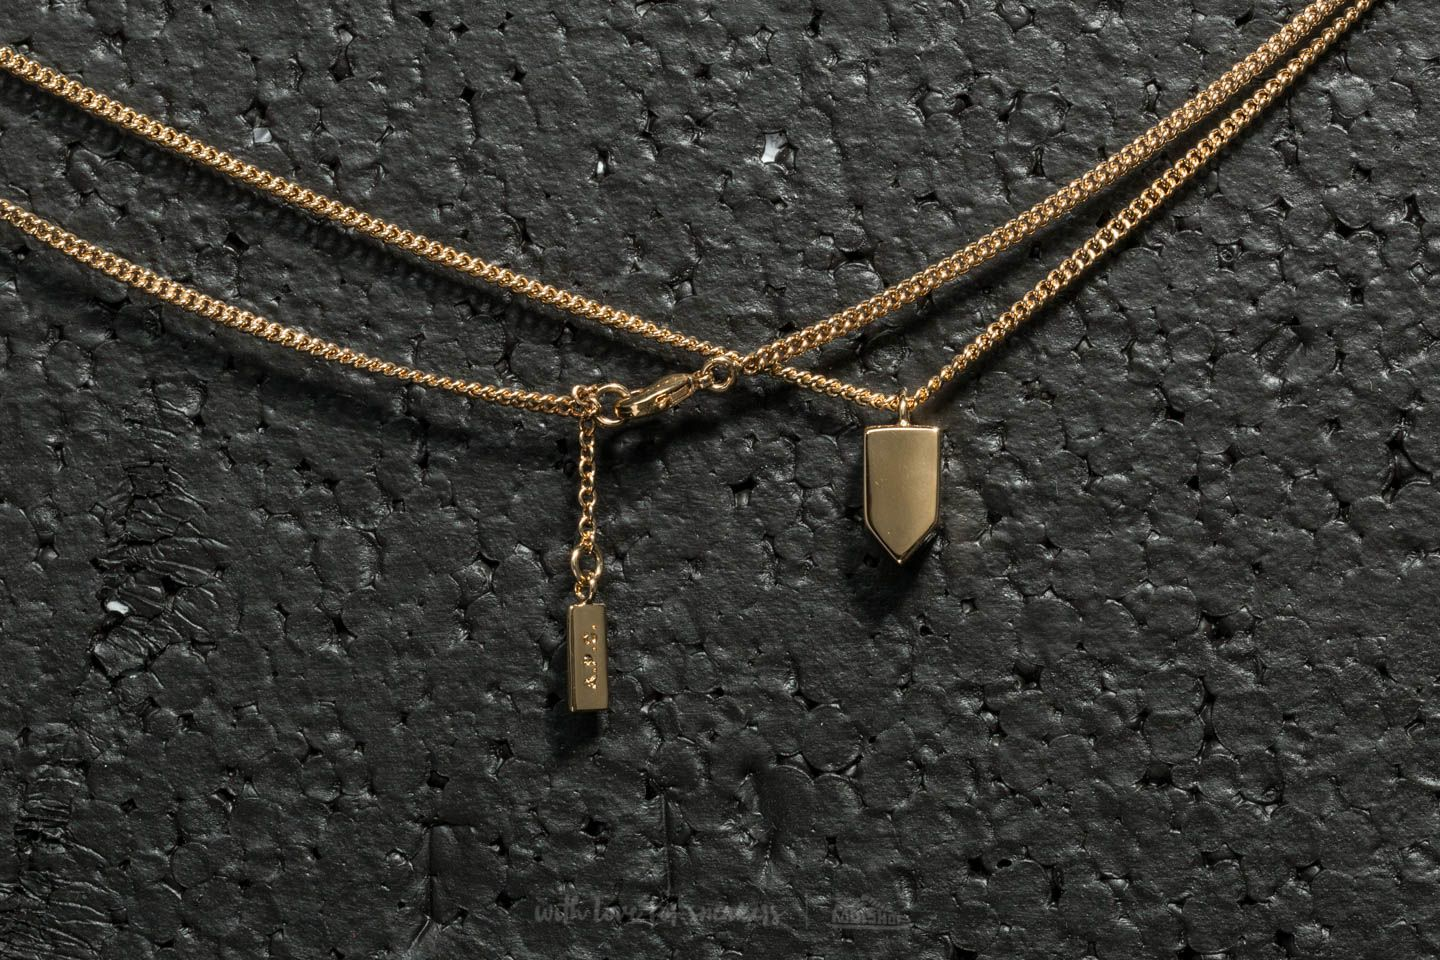 fwrd in gold serge a of apc necklace image p c product